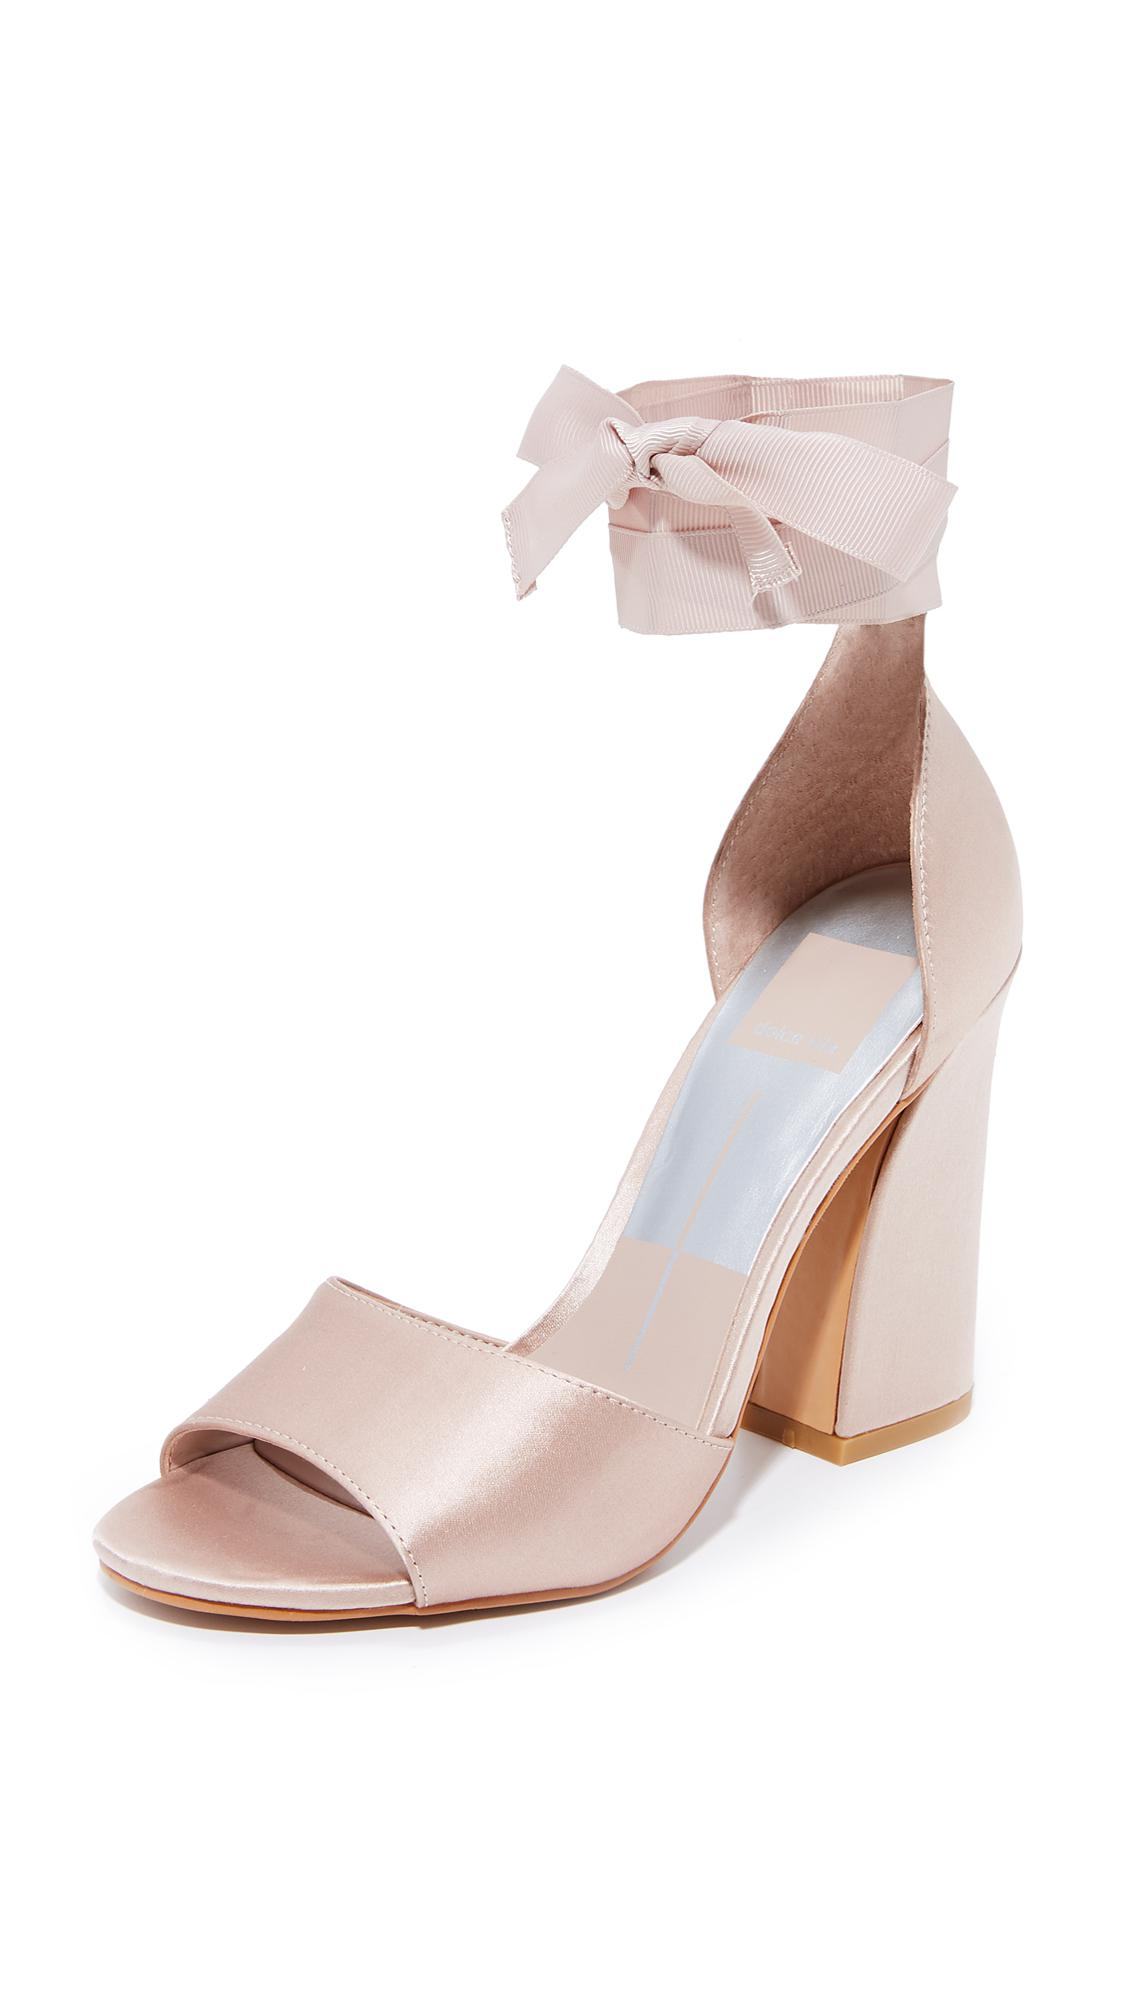 46eb69a597 Dolce Vita Harvey Wrap Sandals in Pink - Lyst